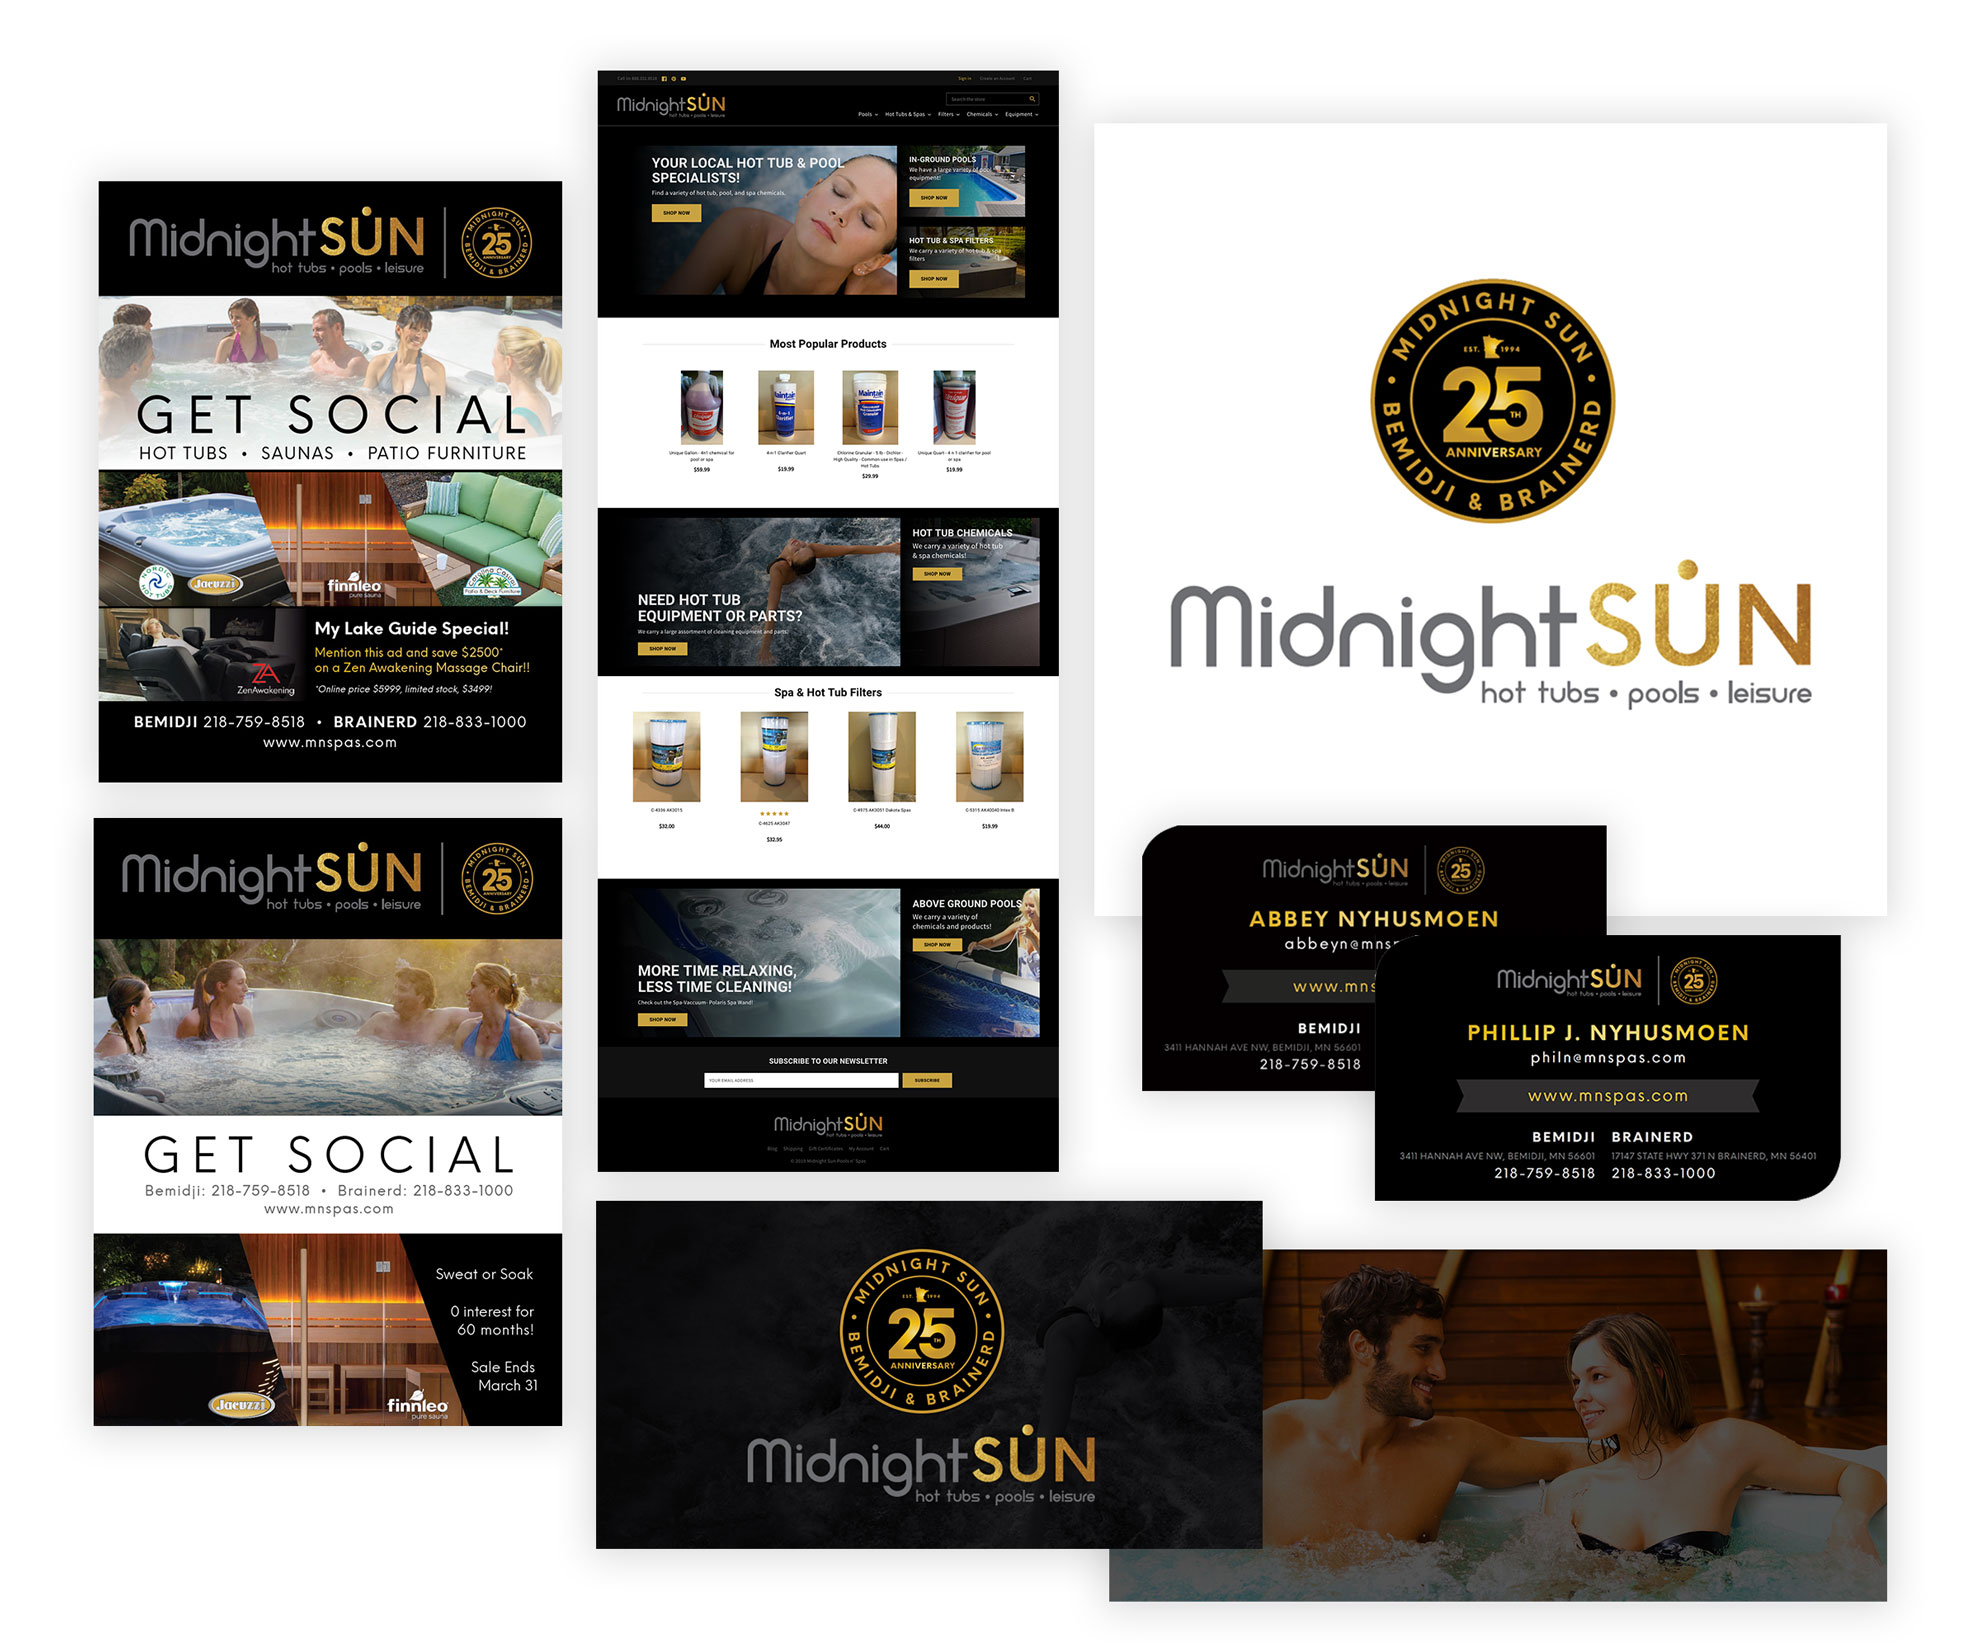 Midnight Sun Website & Branding